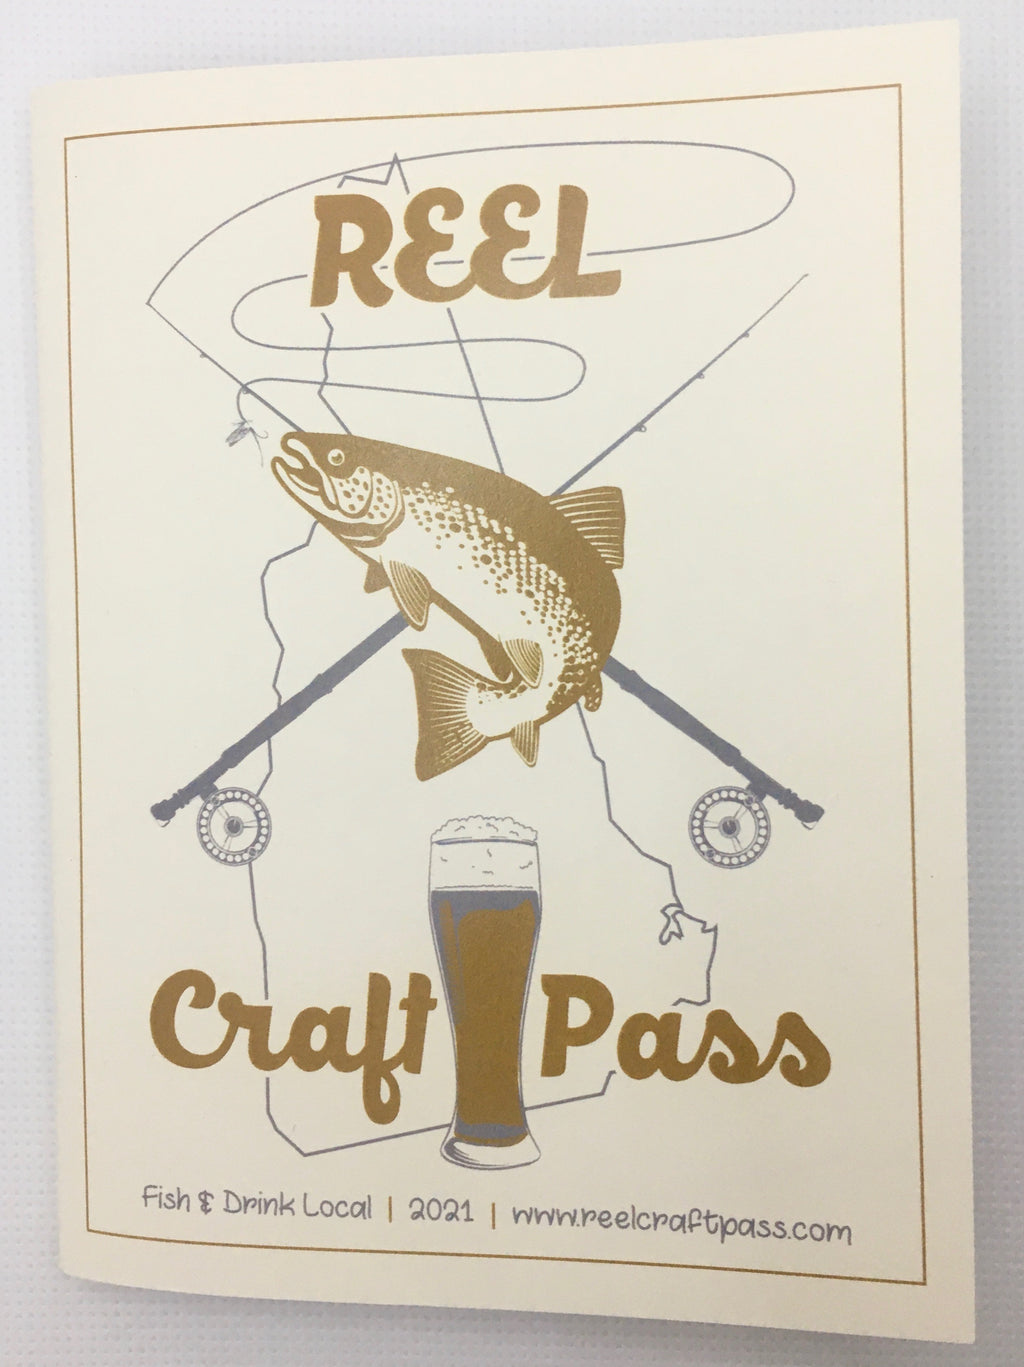 Wisconsin Reel Craft Pass (Expansion Pack 50 Breweries)